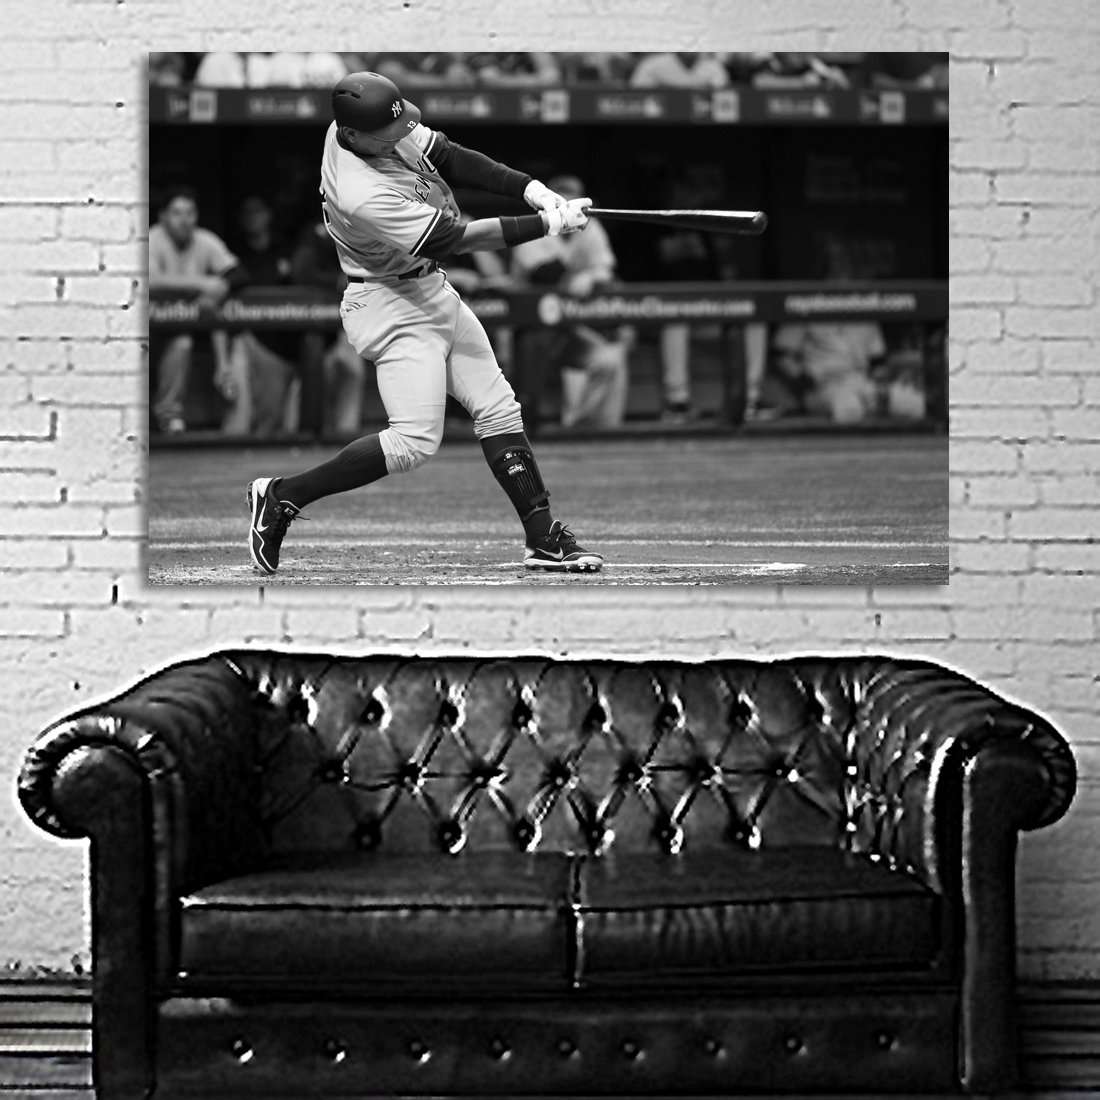 Poster Mural A Rod Yankee Alex Rodriguez 40x60 inch (100x150 cm) on Adhesive Vinyl